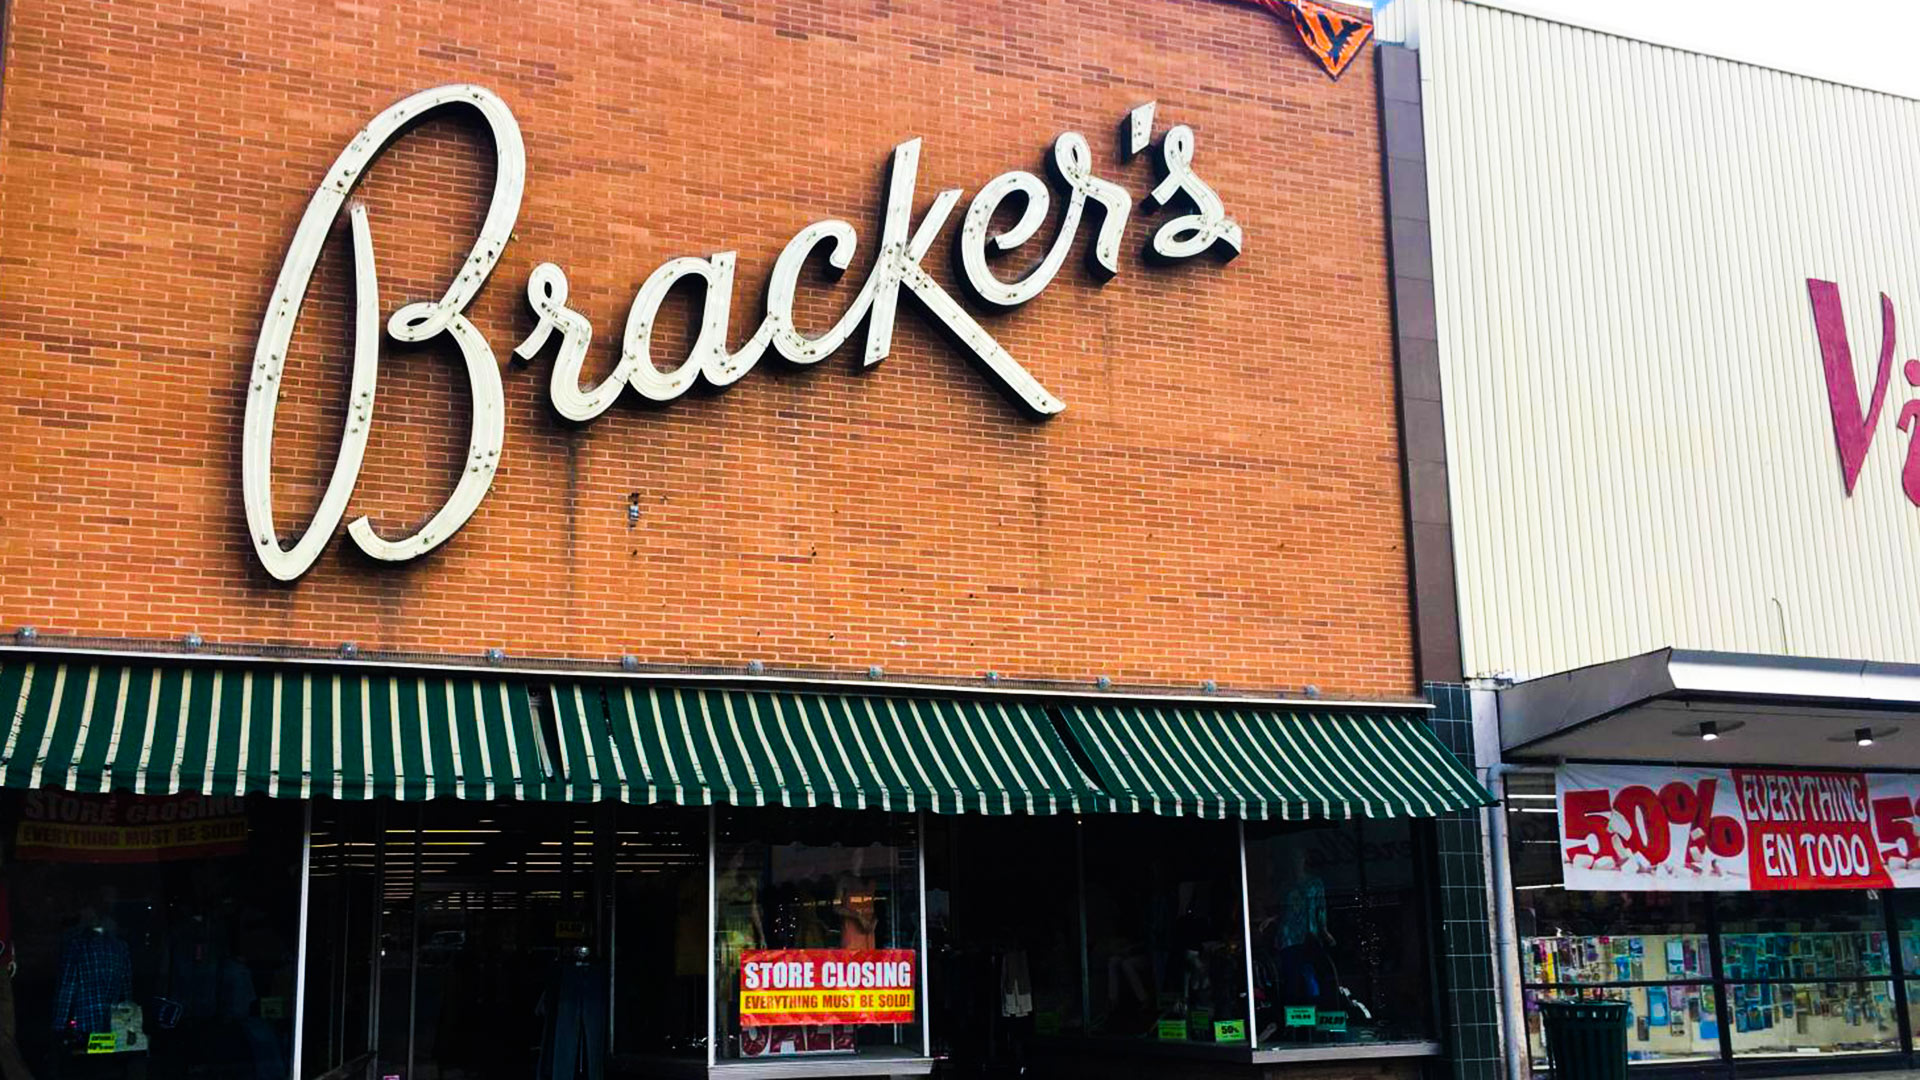 The Bracker's department store in Nogales, Arizona, is set to close October 15, 2017.